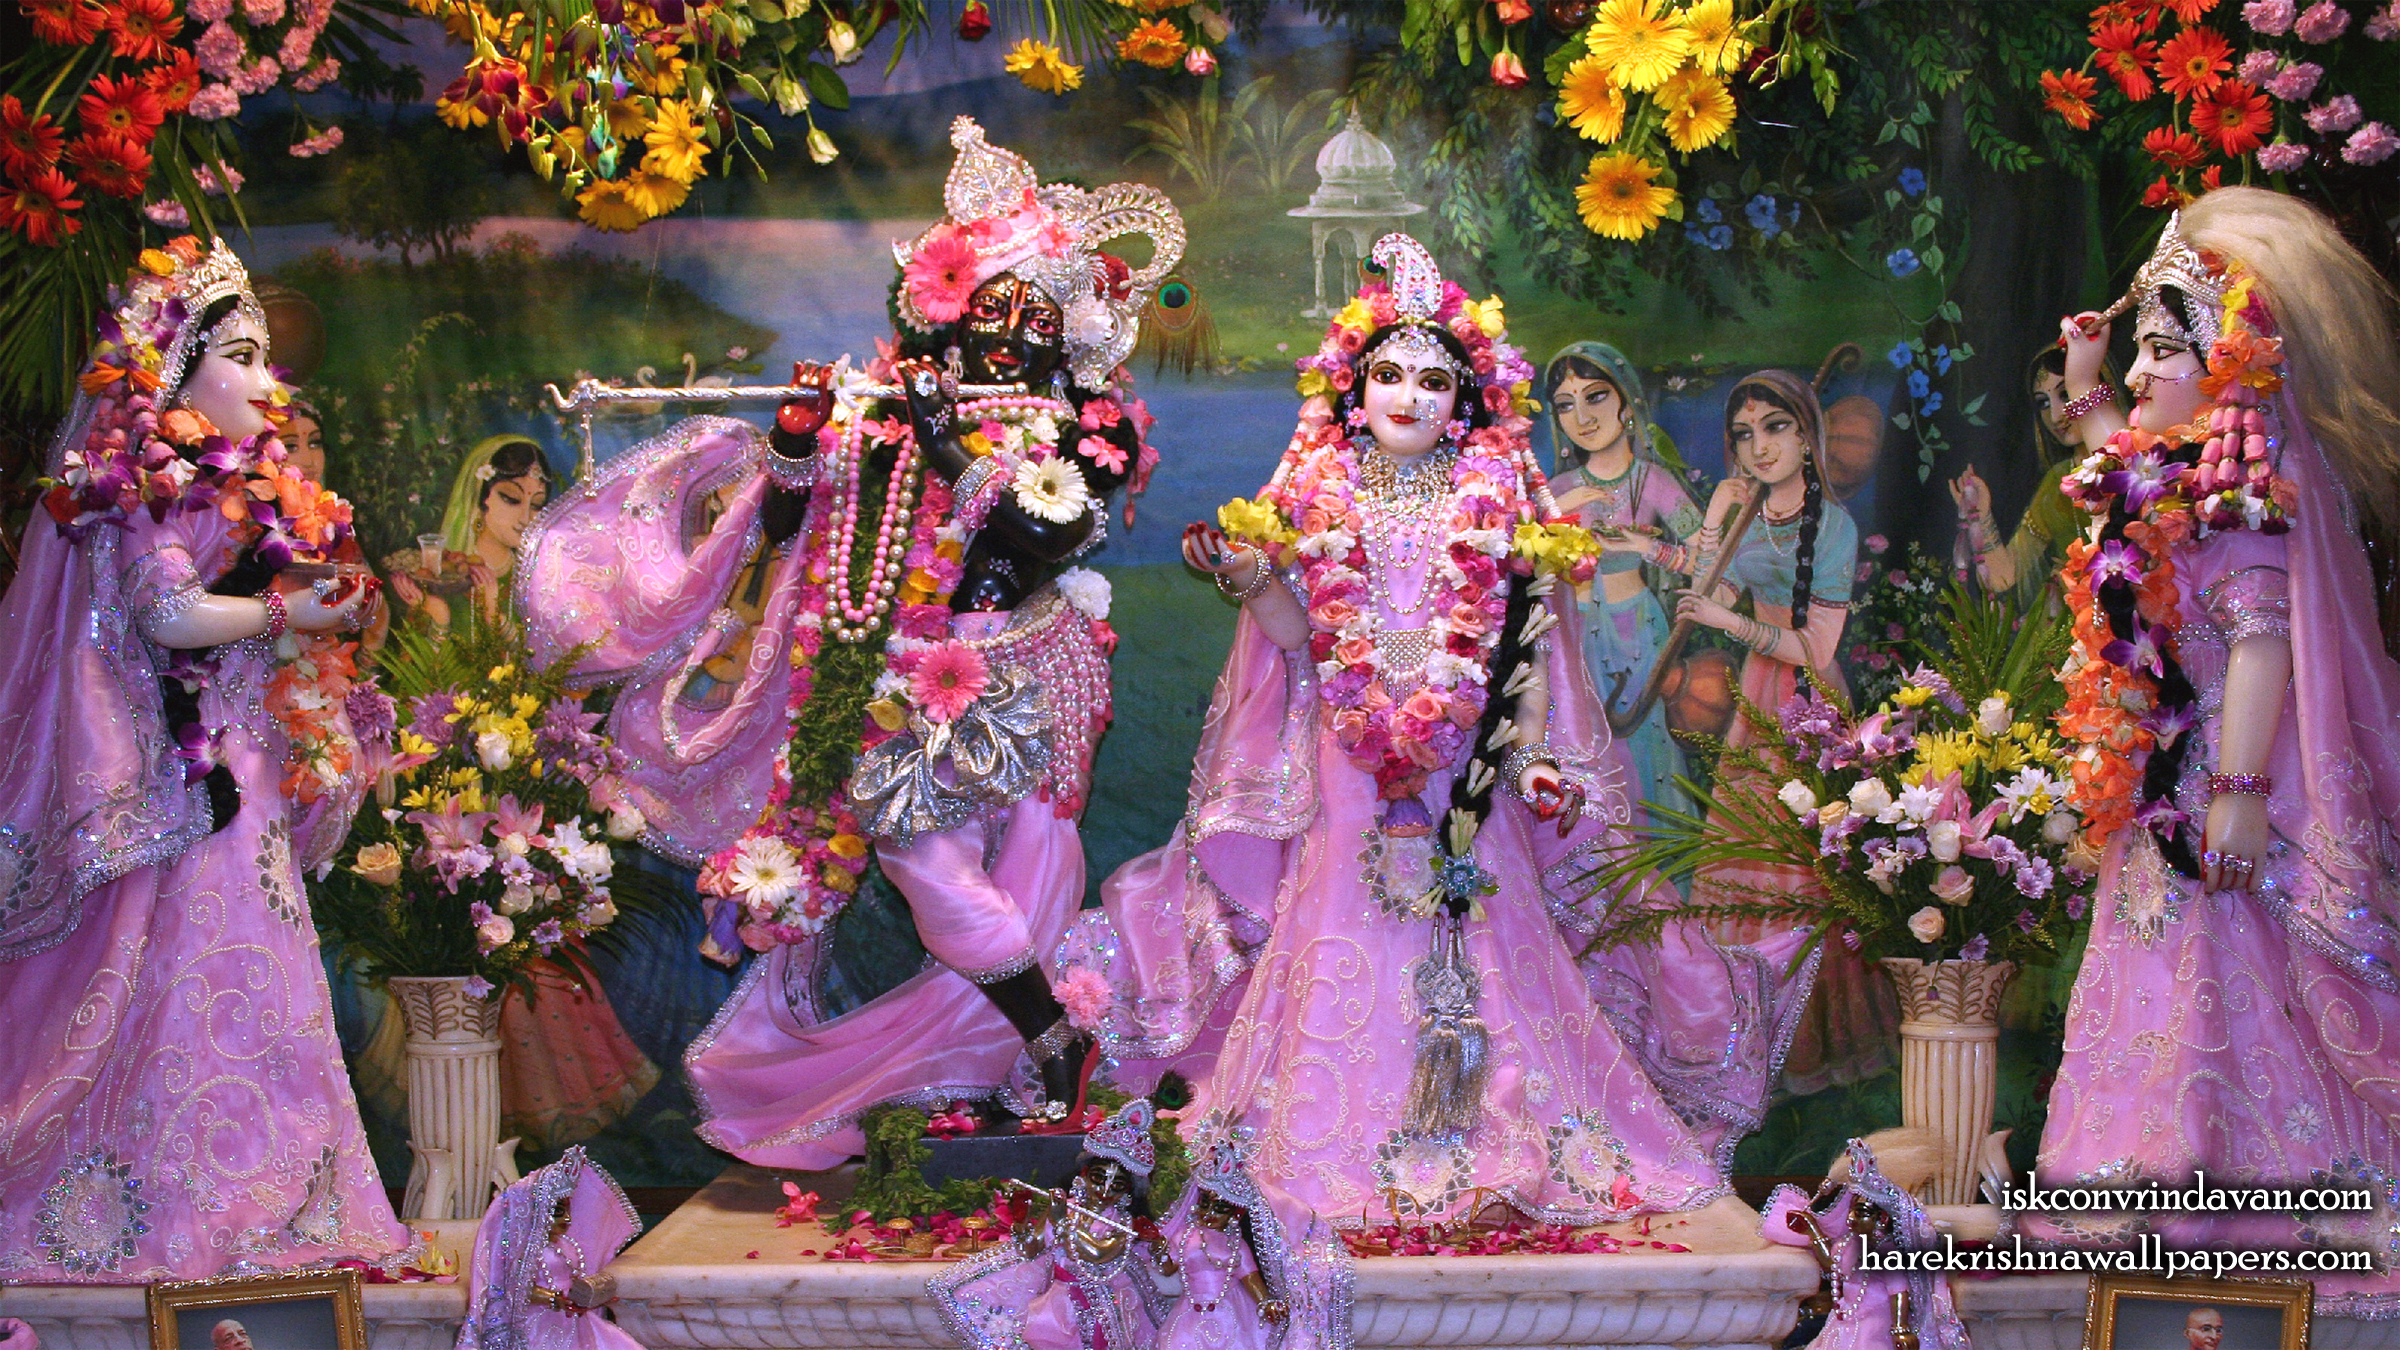 Sri Sri Radha Shyamsundar with Lalita Vishakha Wallpaper (009) Size 2400x1350 Download